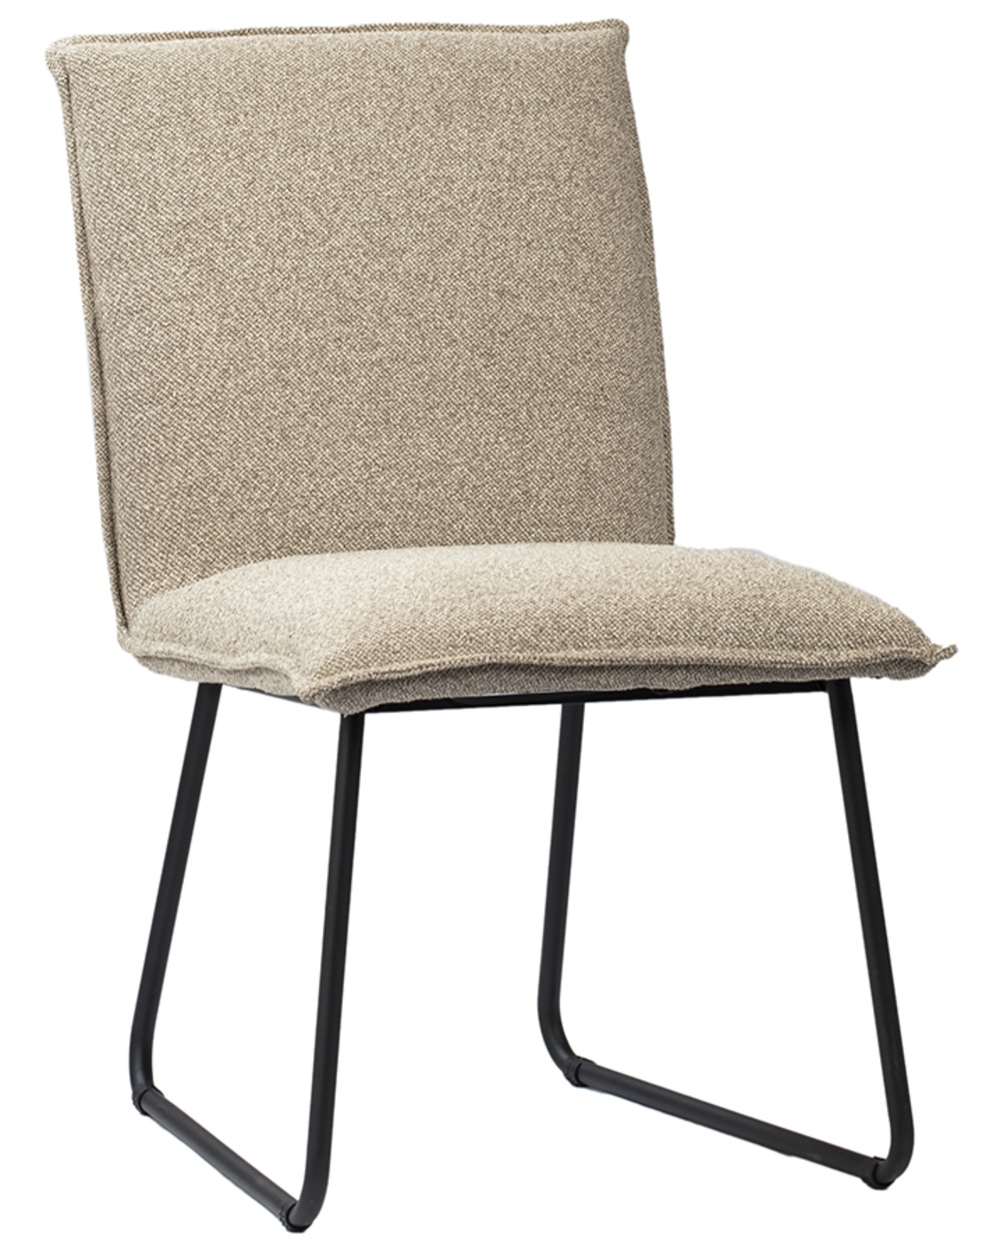 Dovetail Furniture - Foxx Dining Chair